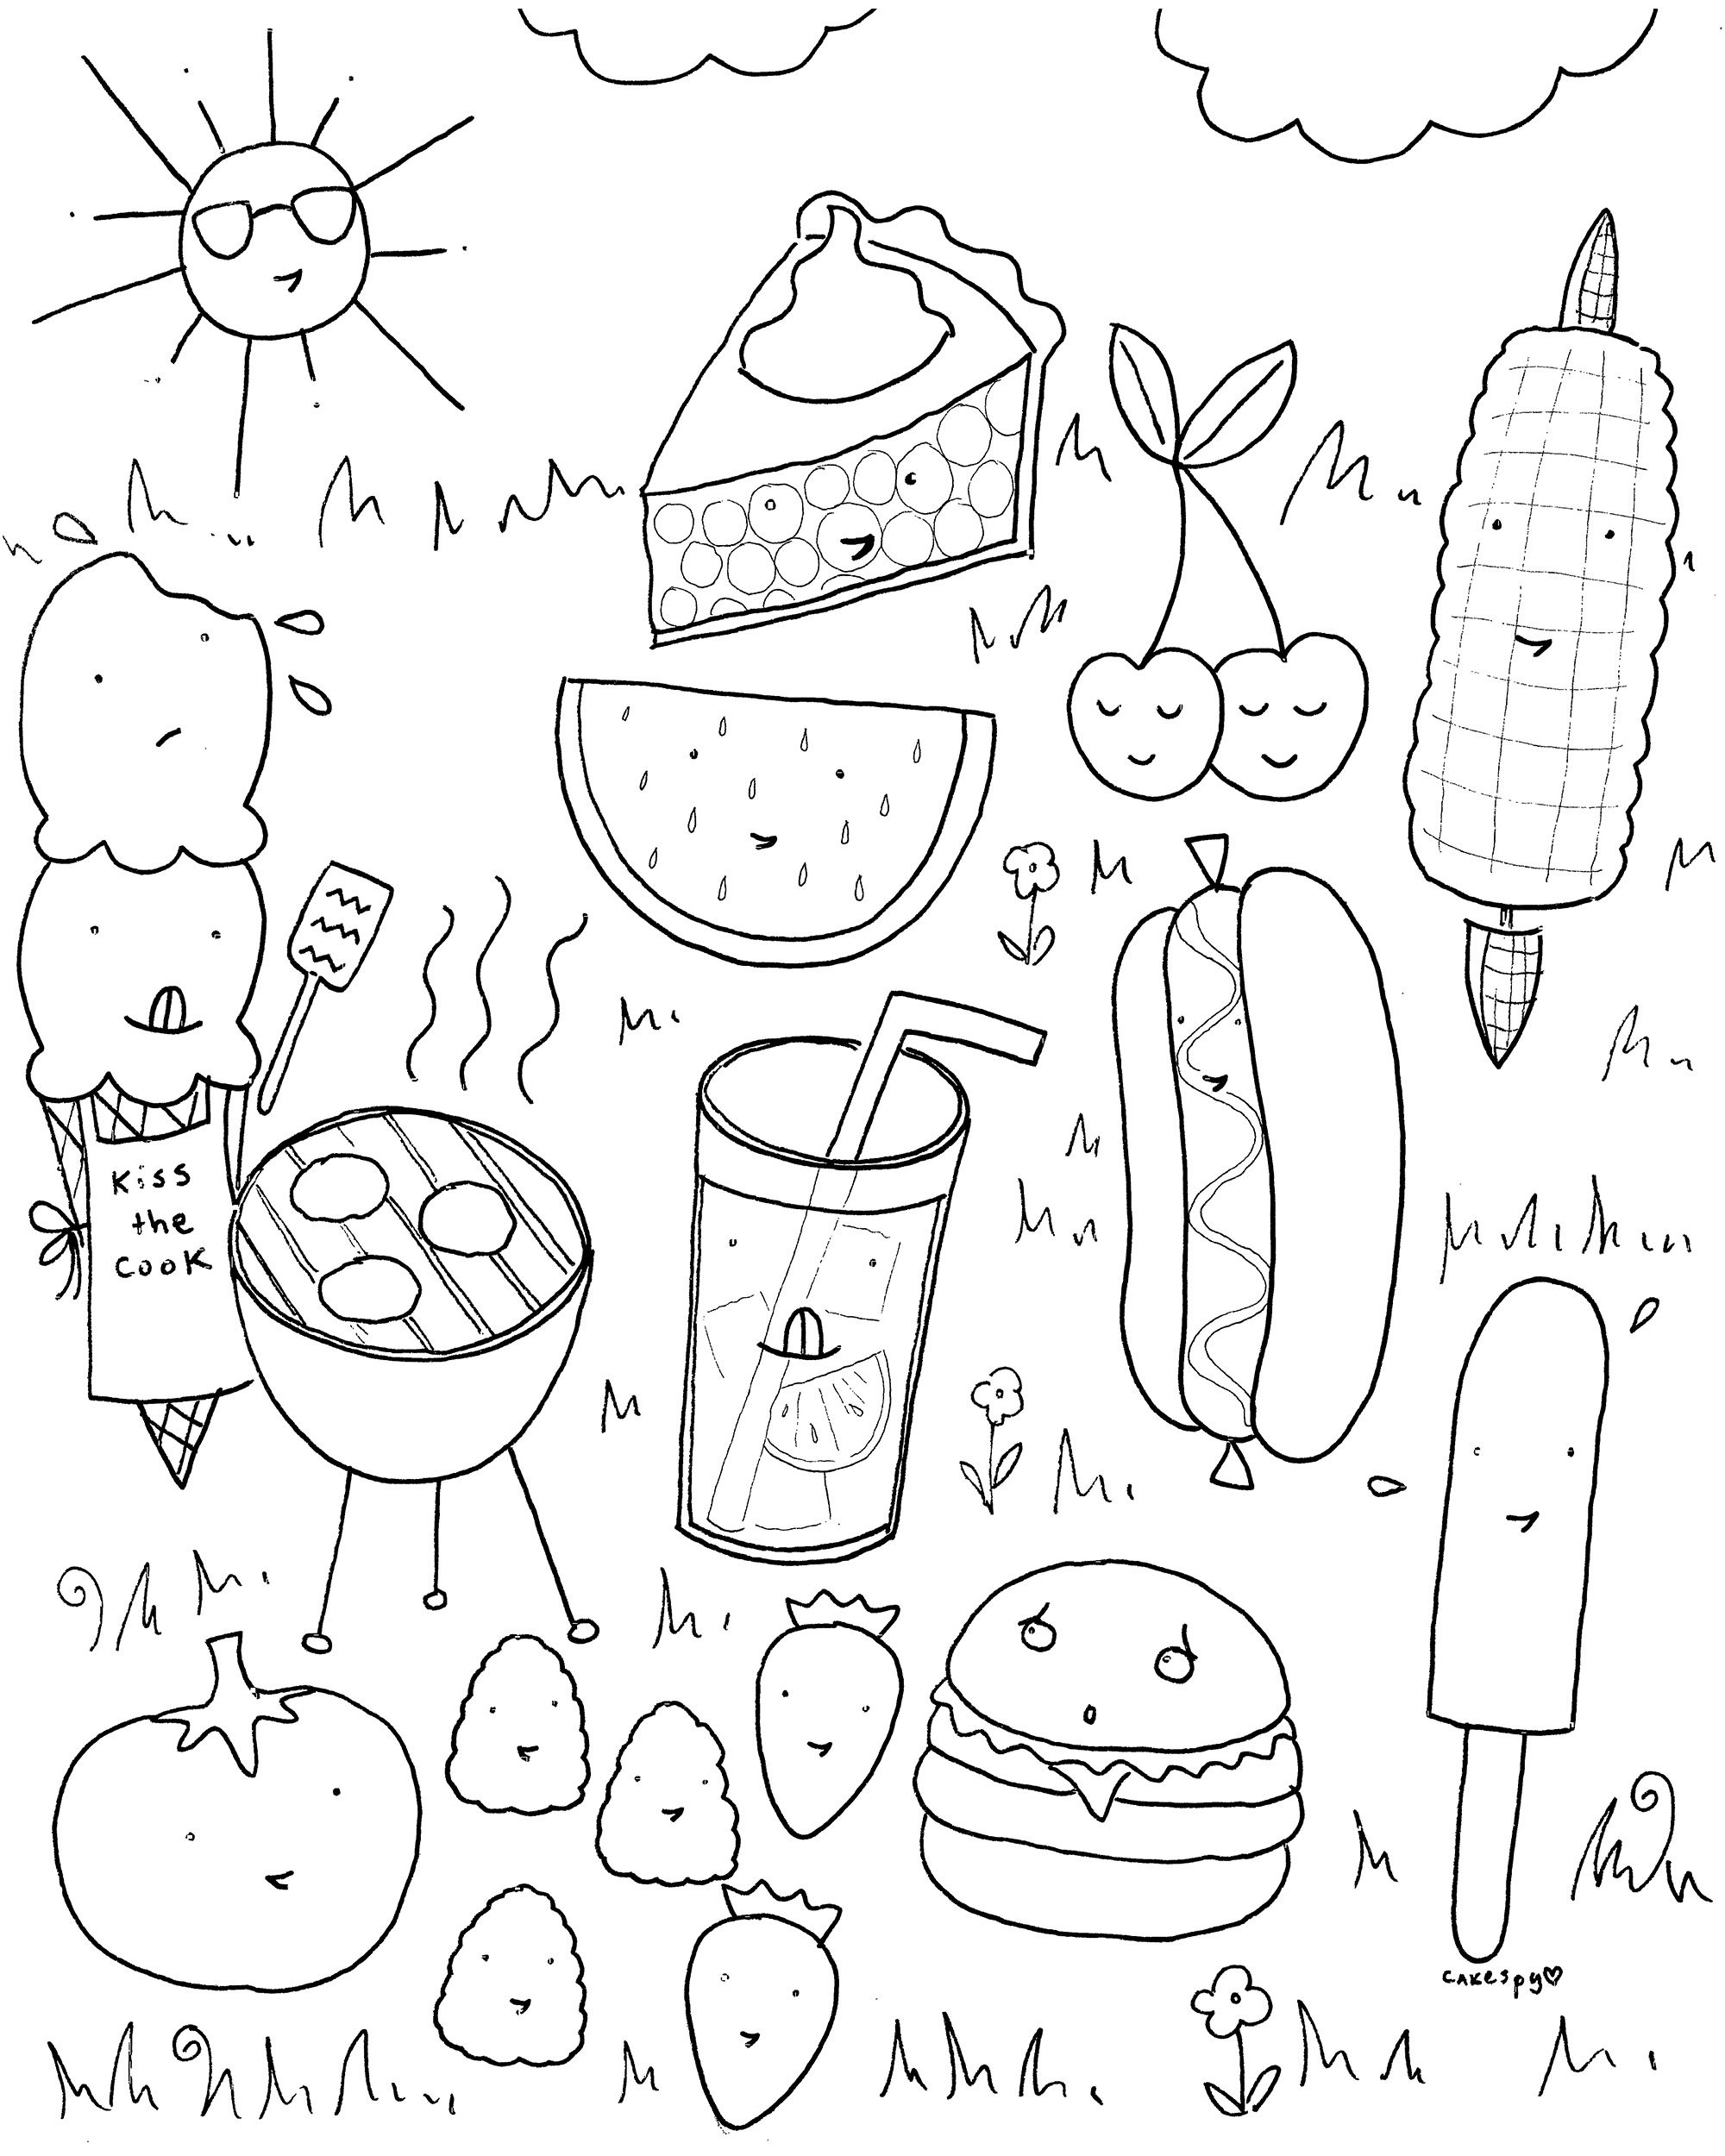 Free Downloadable Summer Fun Coloring Book Pages | Nanny Mcme - Summer Coloring Sheets Free Printable